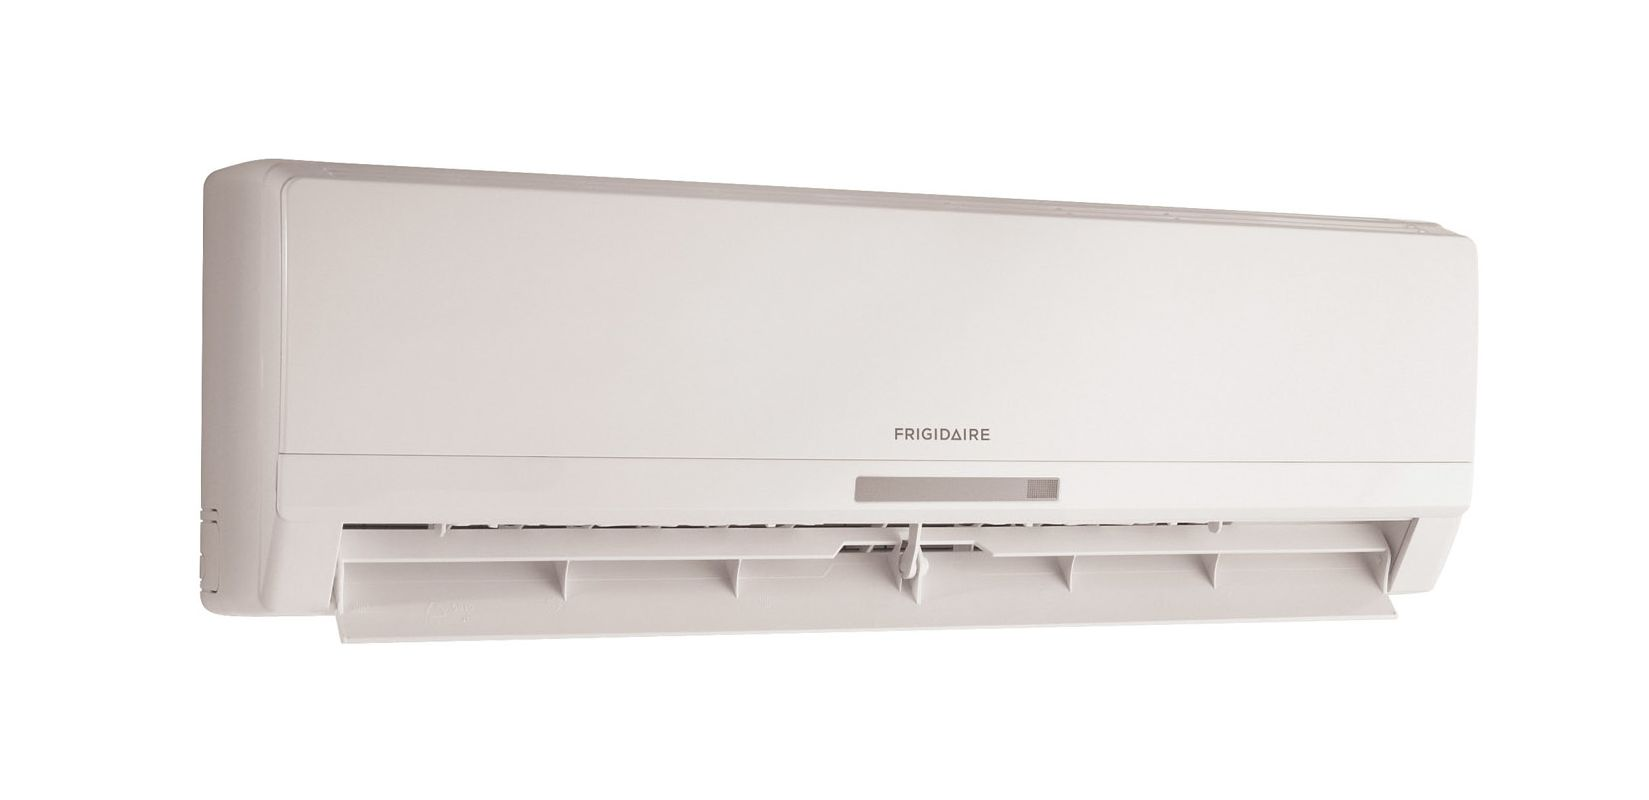 Ductless Air Conditioner for System # FRS184YS2 VentingDirect.com #6F625C